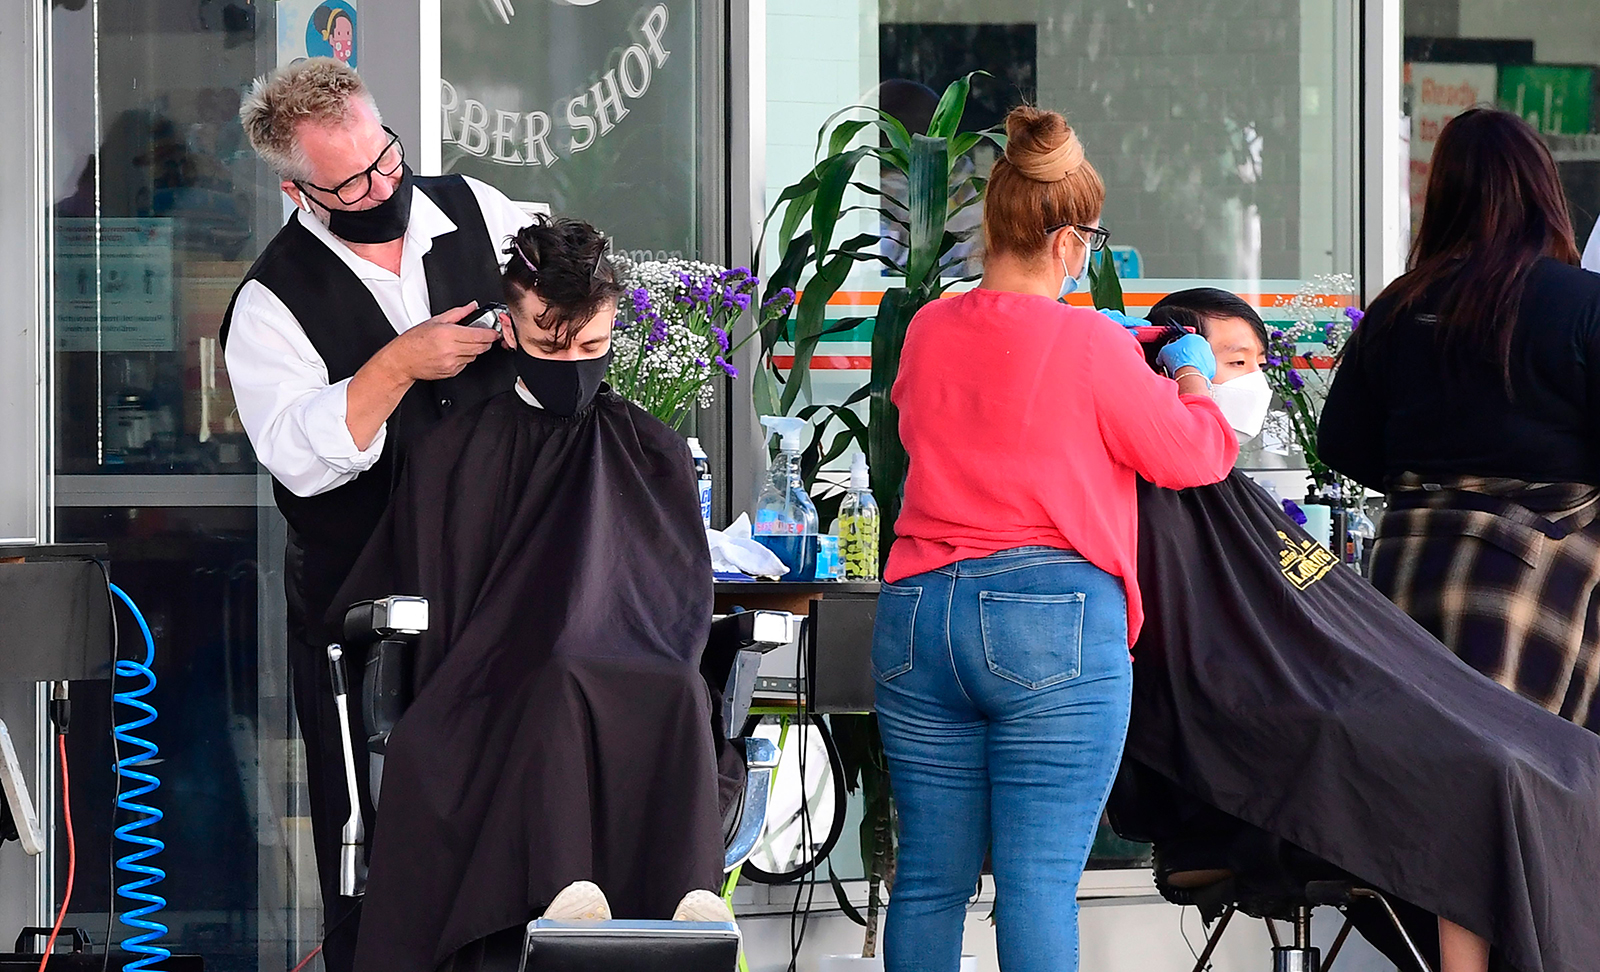 Hairdressers work on customers outdoors in Los Angeles on Friday, August 28.